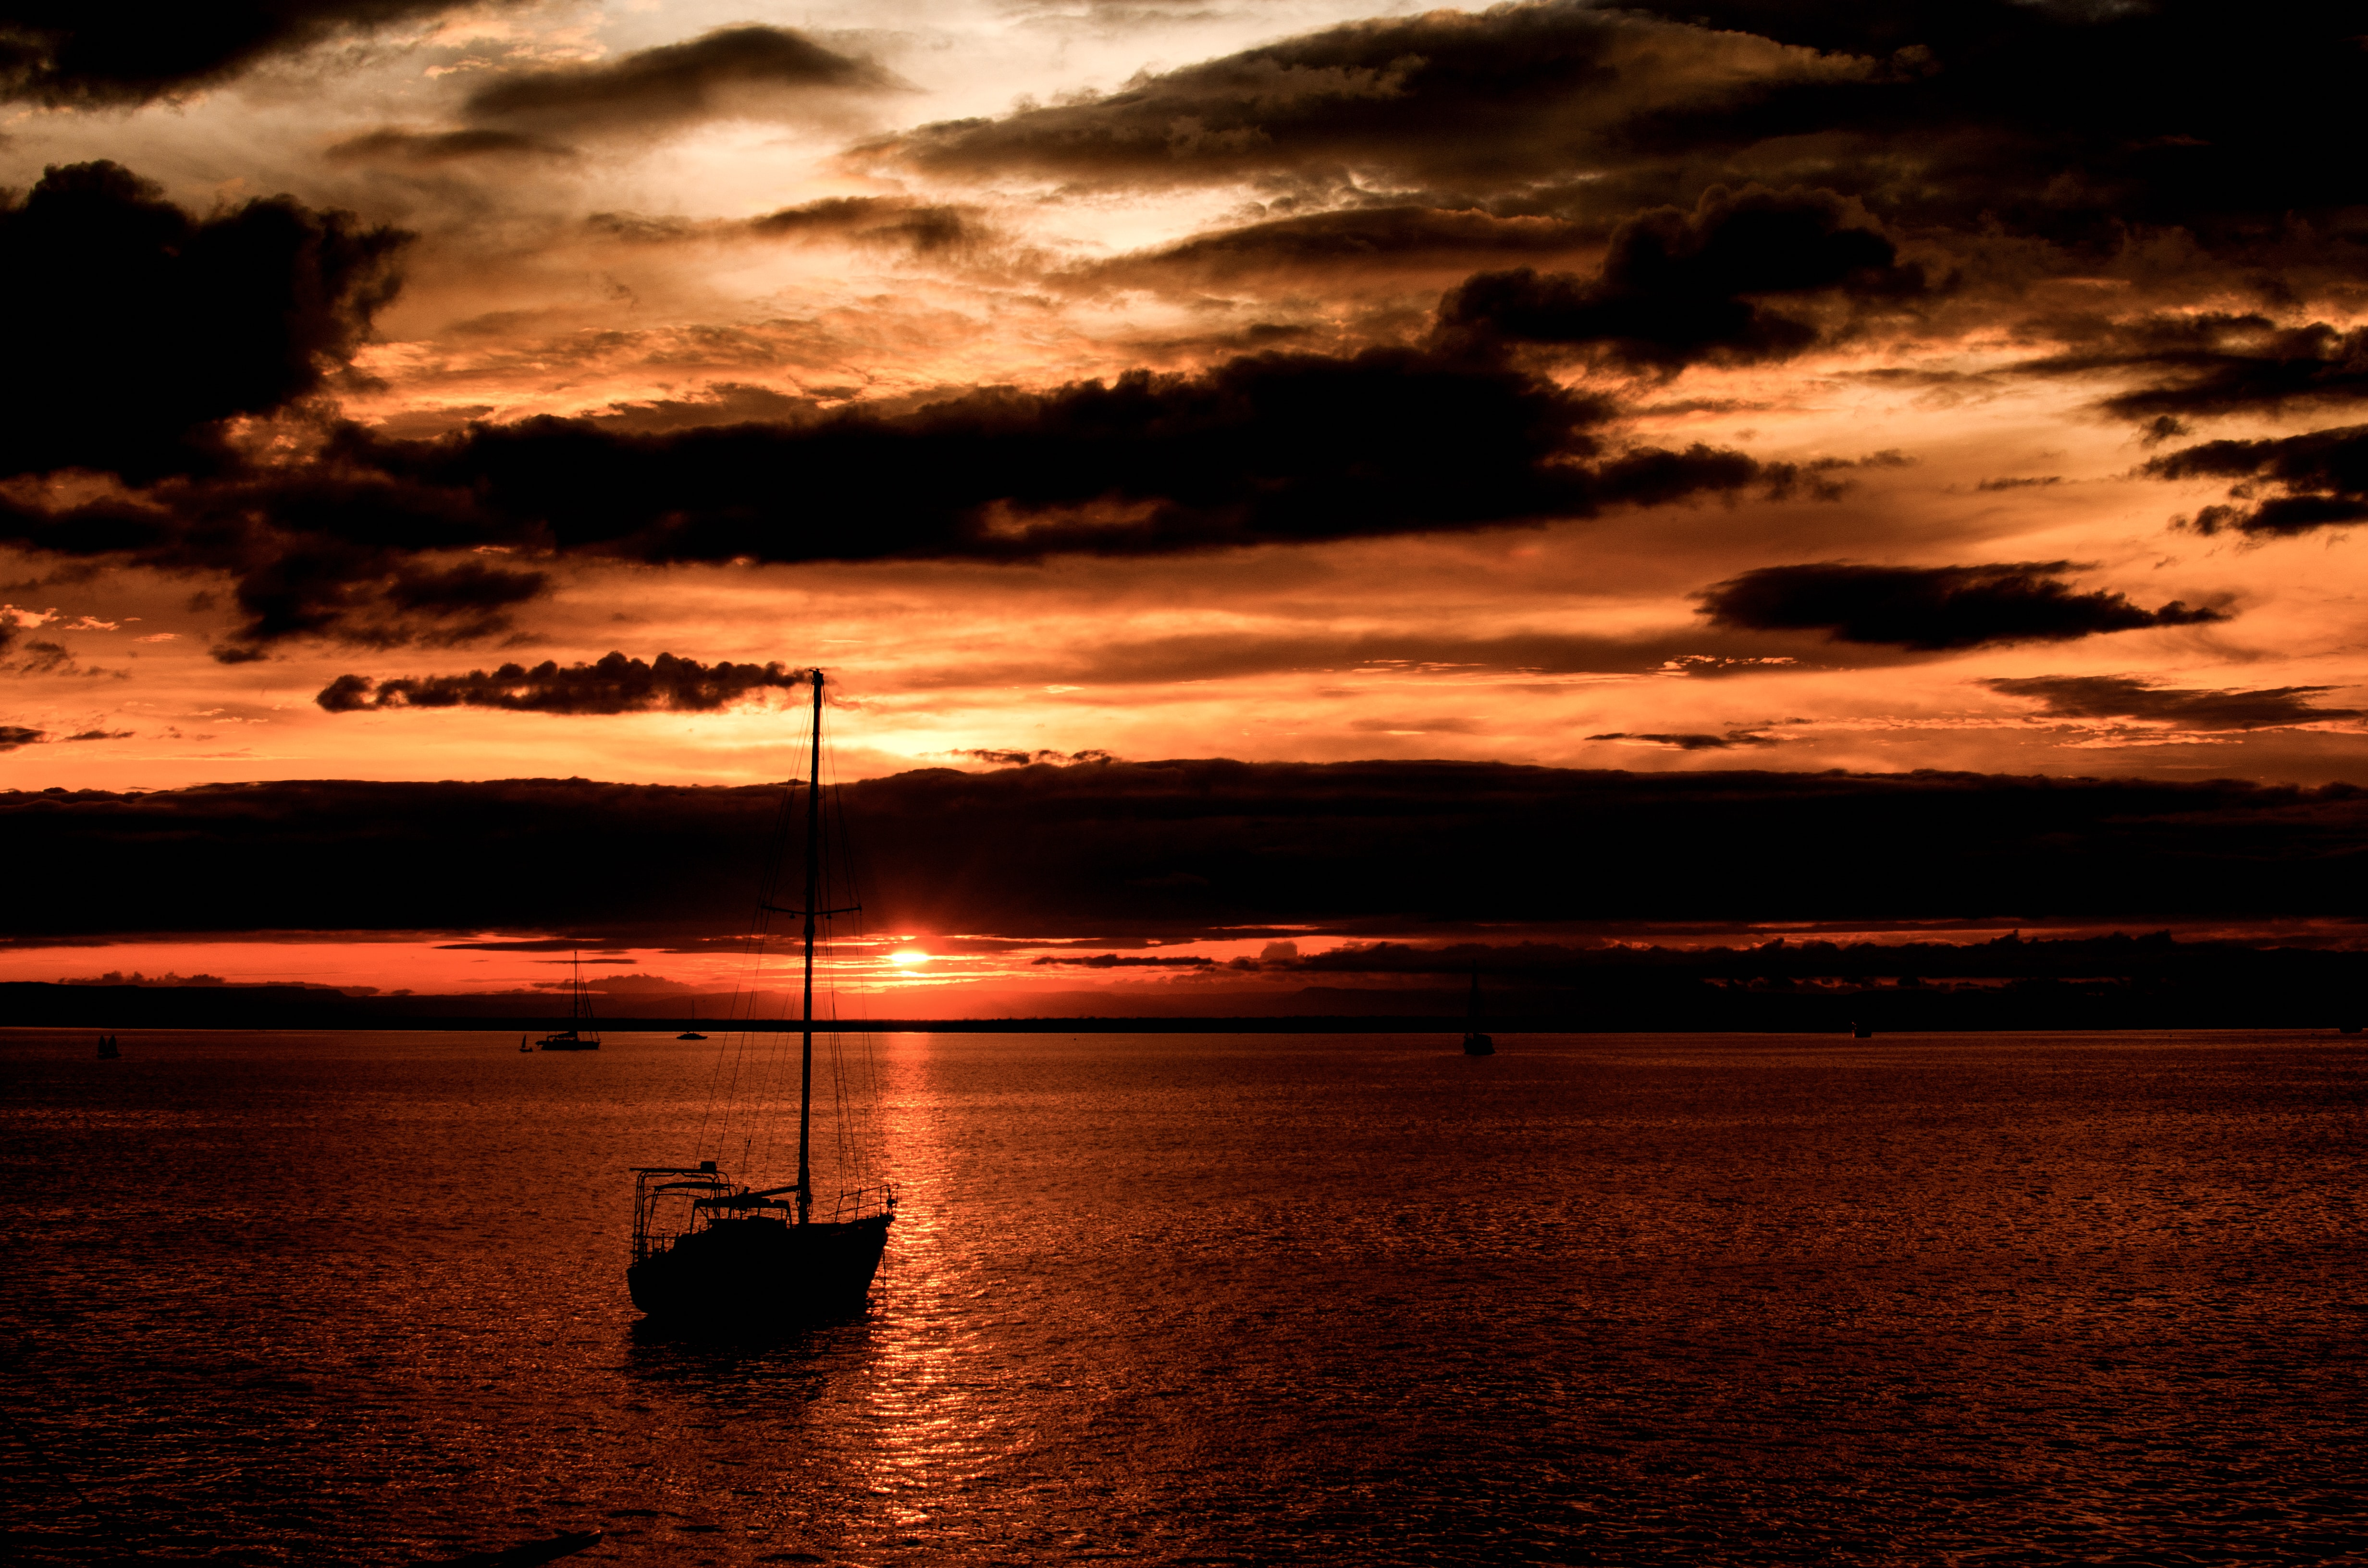 Small boats are set in silhouette as the sun sets in a deep orange across the water at La Paz.